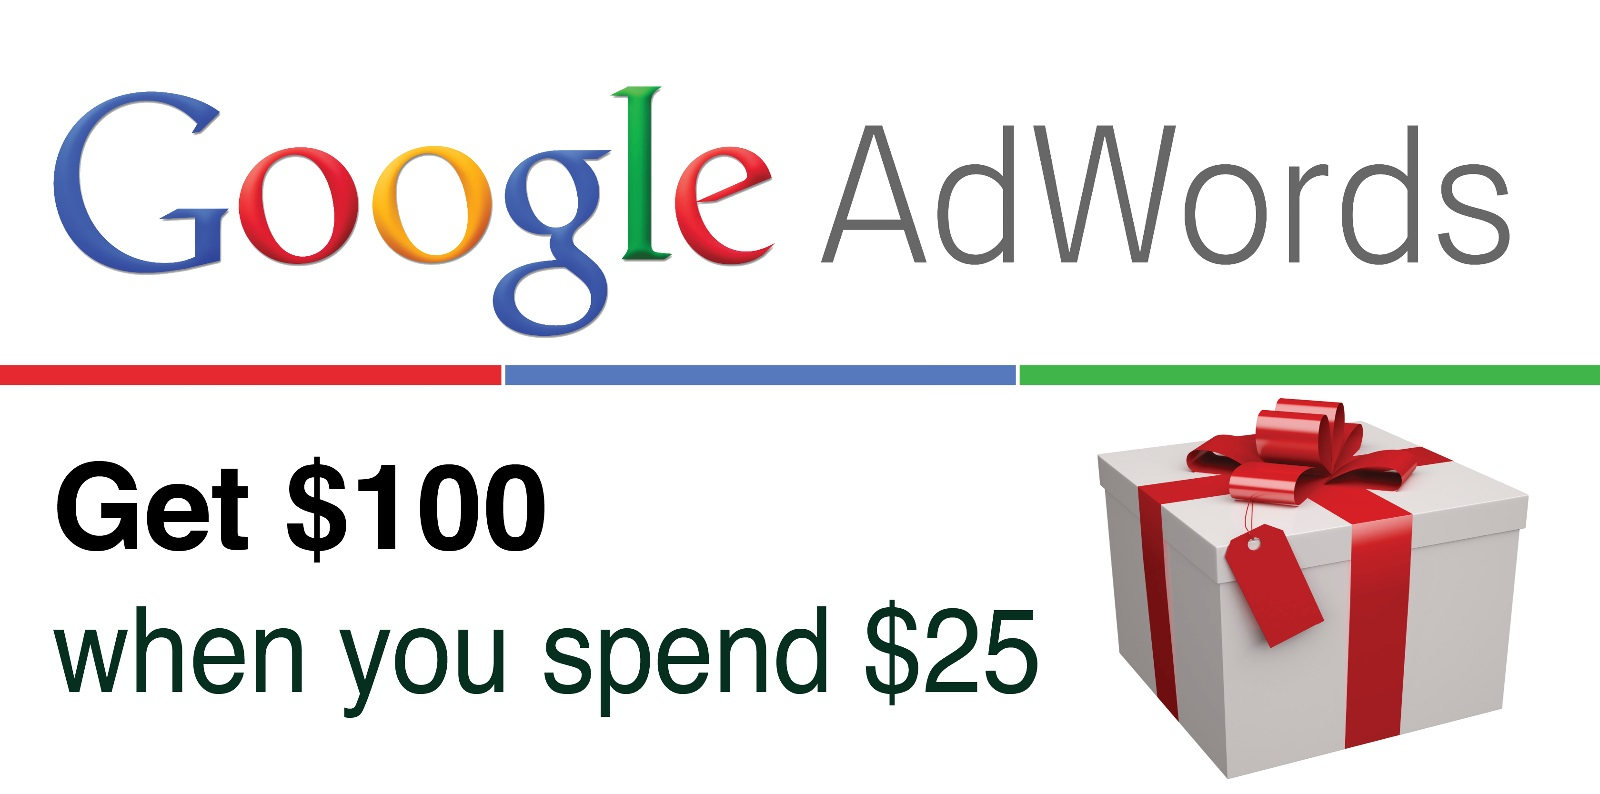 Google Adwords Coupon code $100 New Zealand for 2017 new accounts